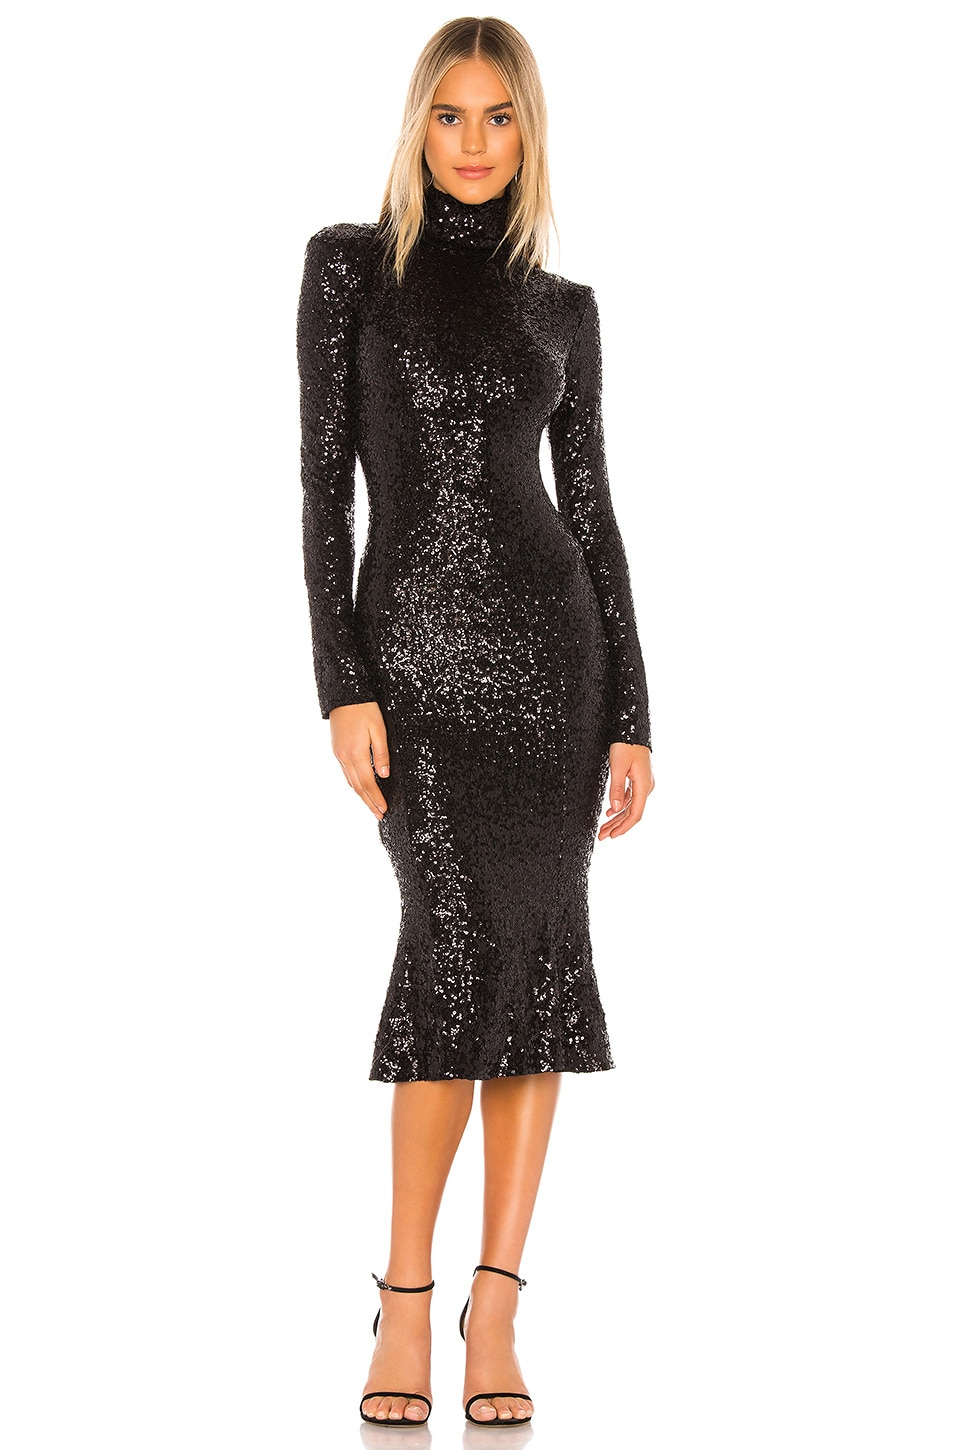 Norma Kamali Dresses Sequin Fishtail Dress